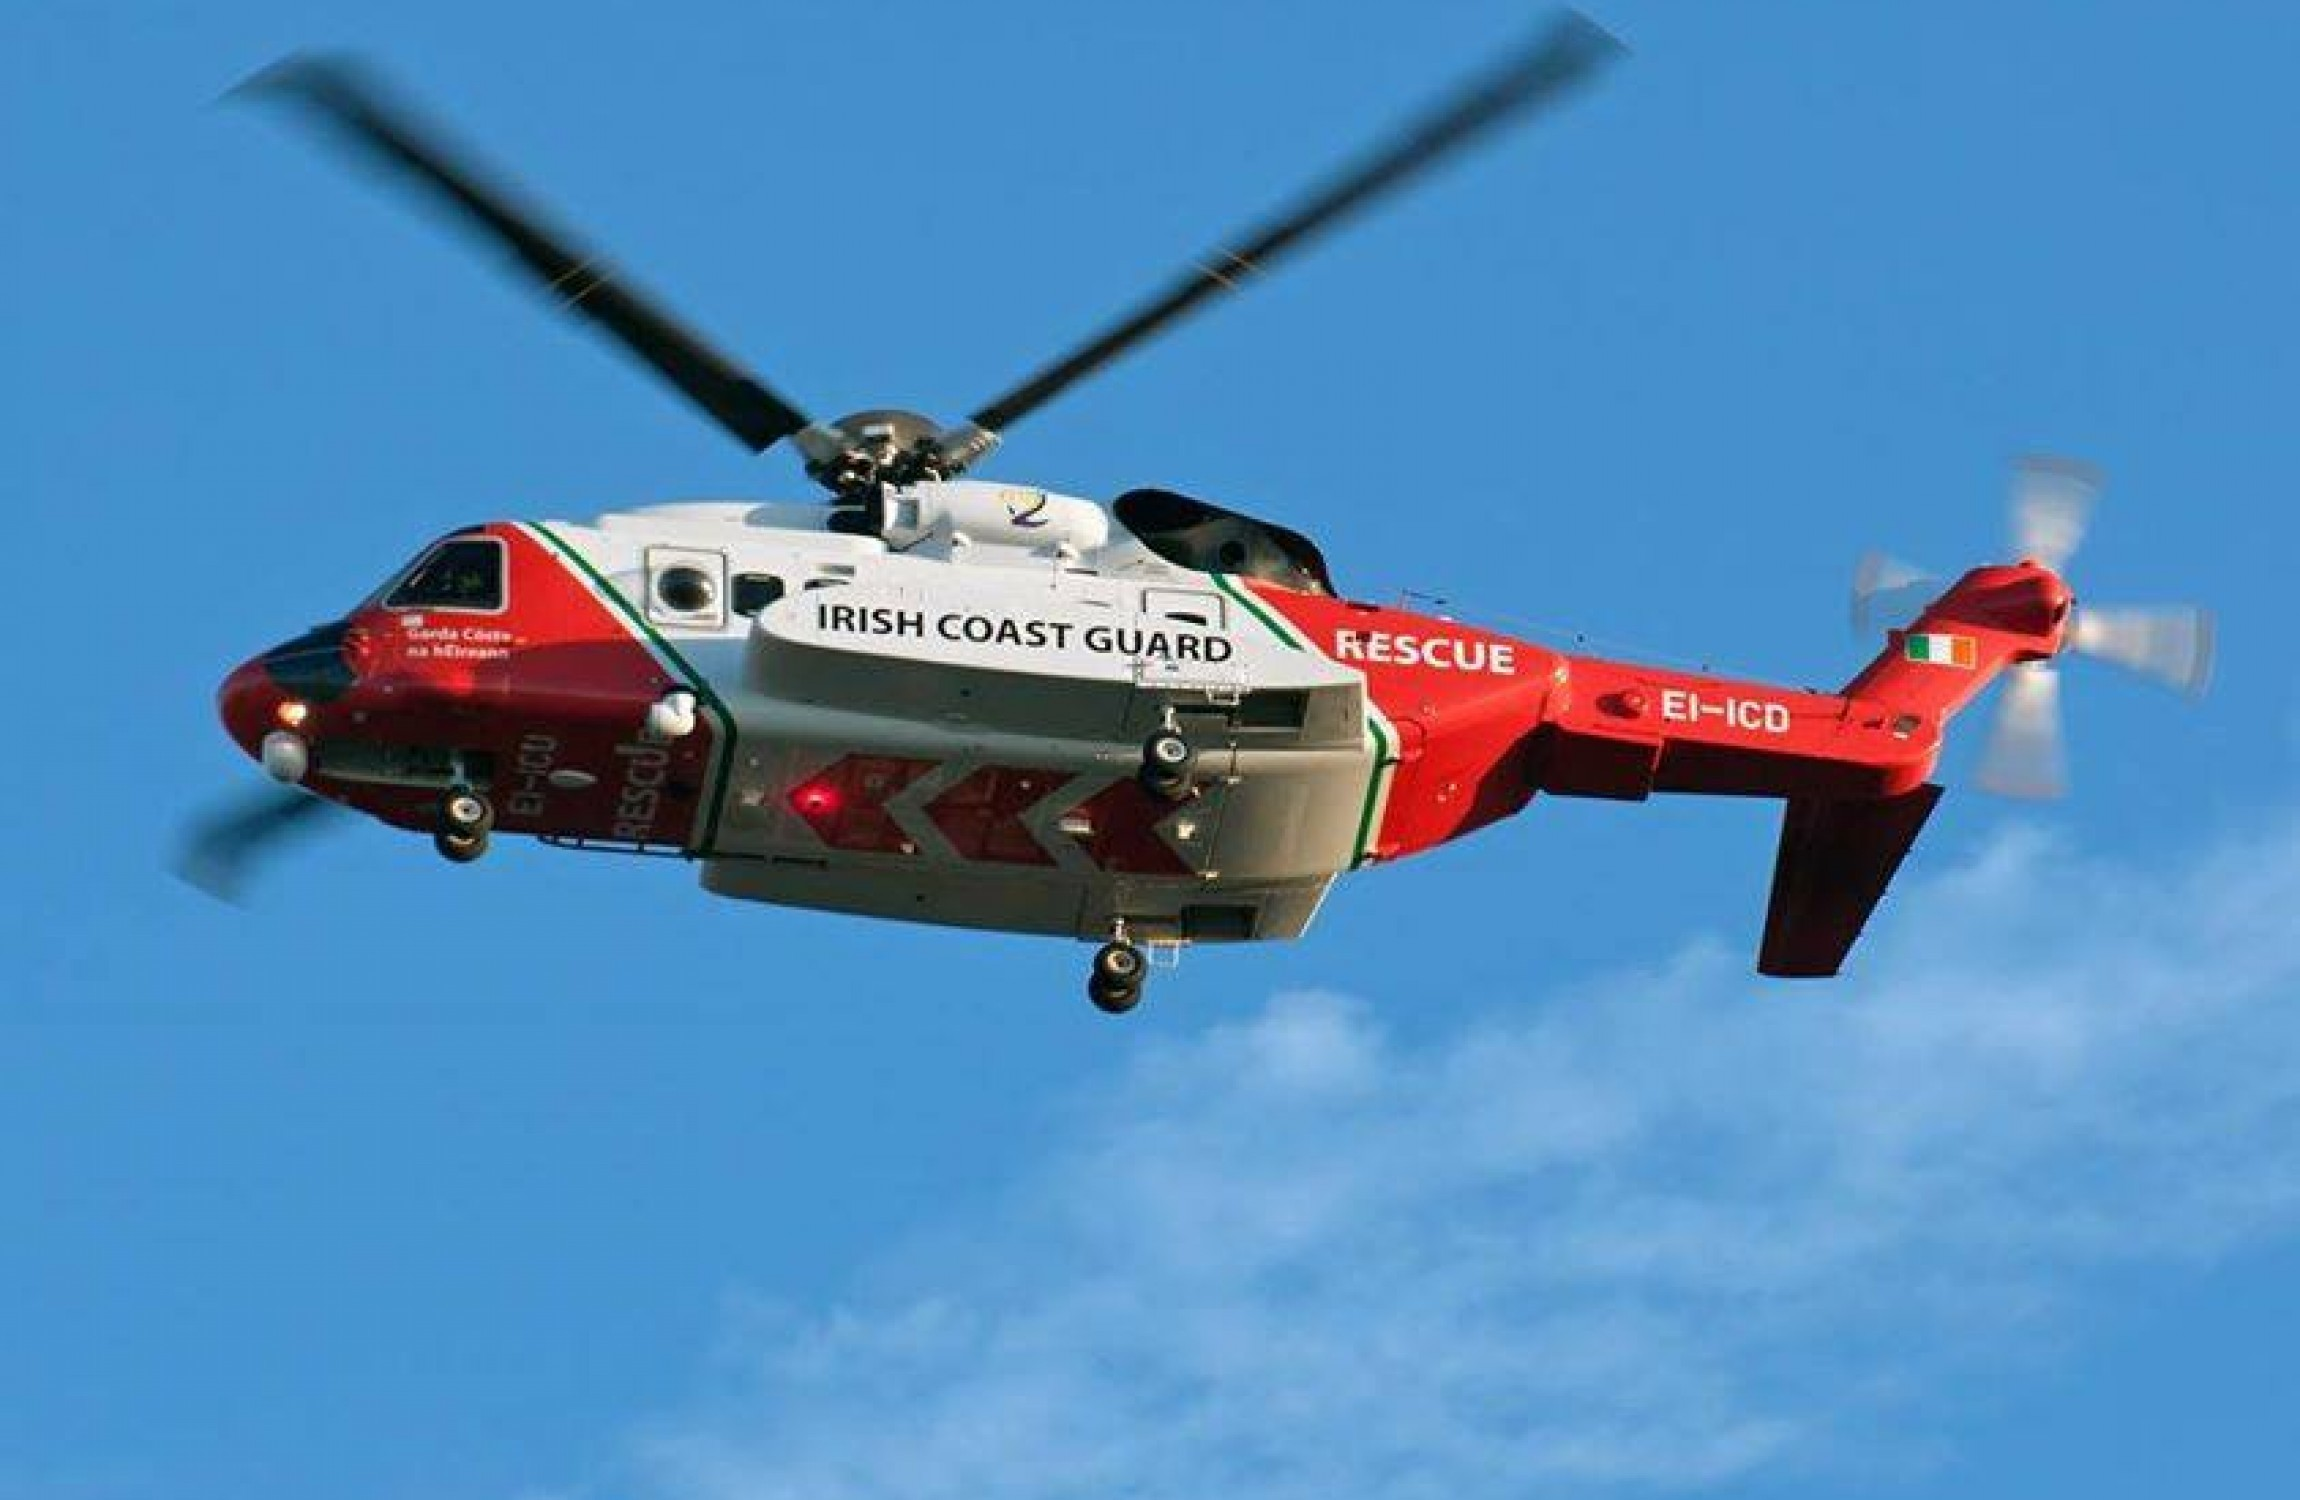 One Rescued, Three Missing In Operation To Locate Coast Guard Helicopter